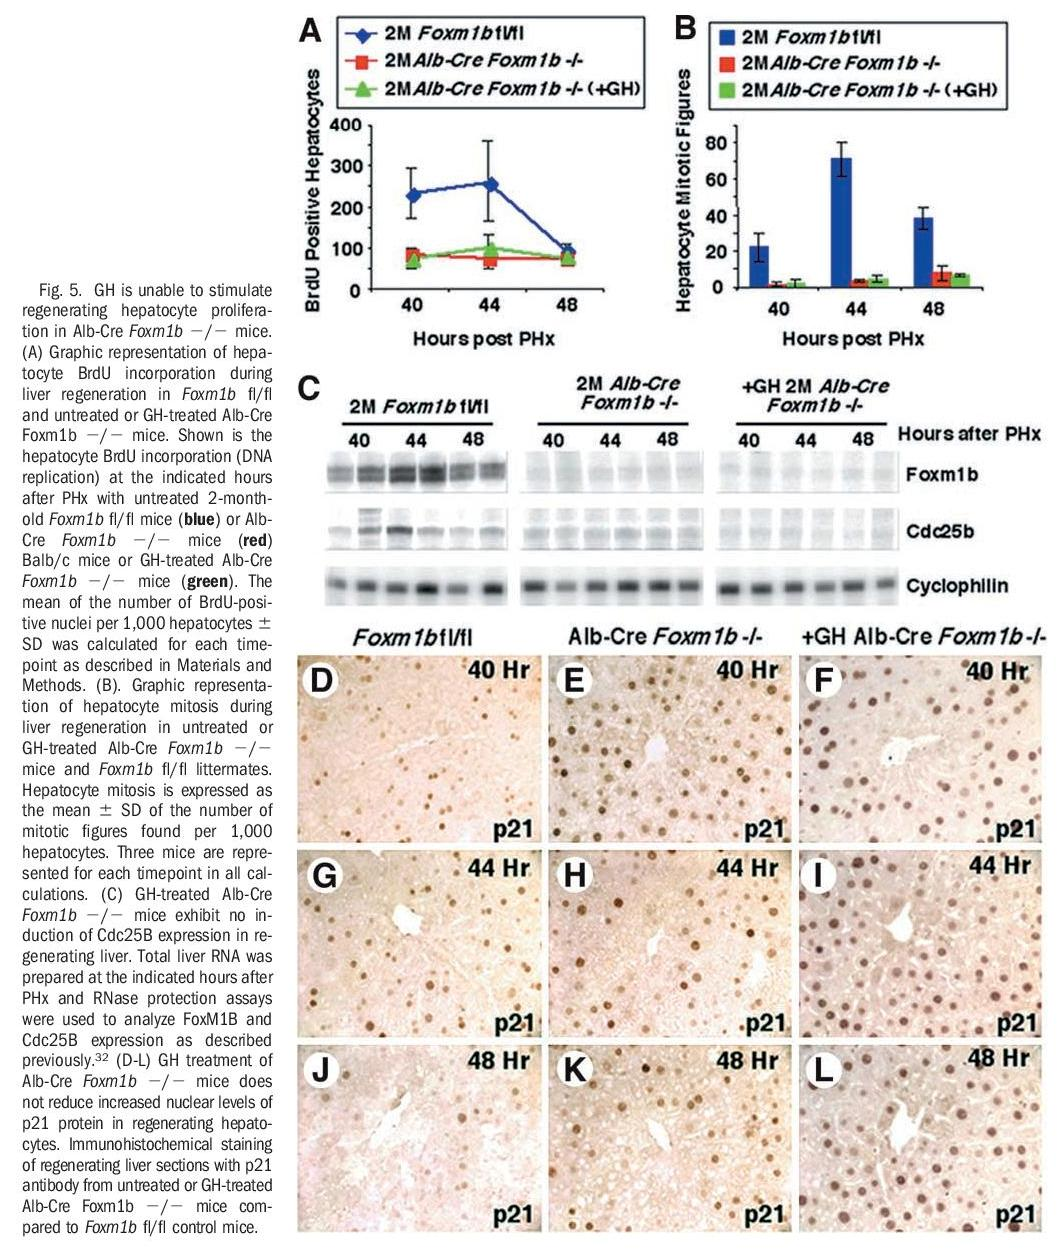 Growth Hormone Stimulates Proliferation of Old-Aged Regenerating Liver Through Forkhead Box m1b